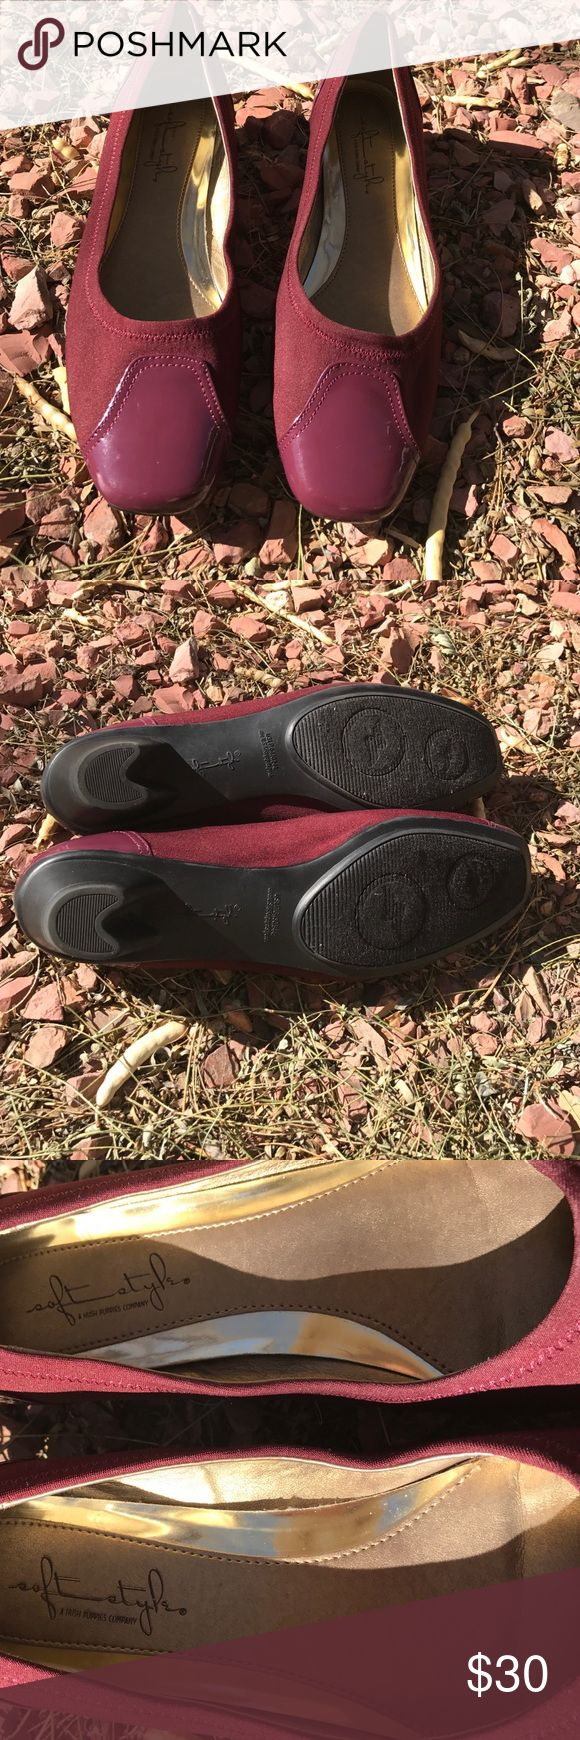 Like new Merlot colored Shoes Beautiful never warn Soft Style By Hush Puppies shoes heel is very low,size 9.5 M Soft Style By Hush Puppies Shoes